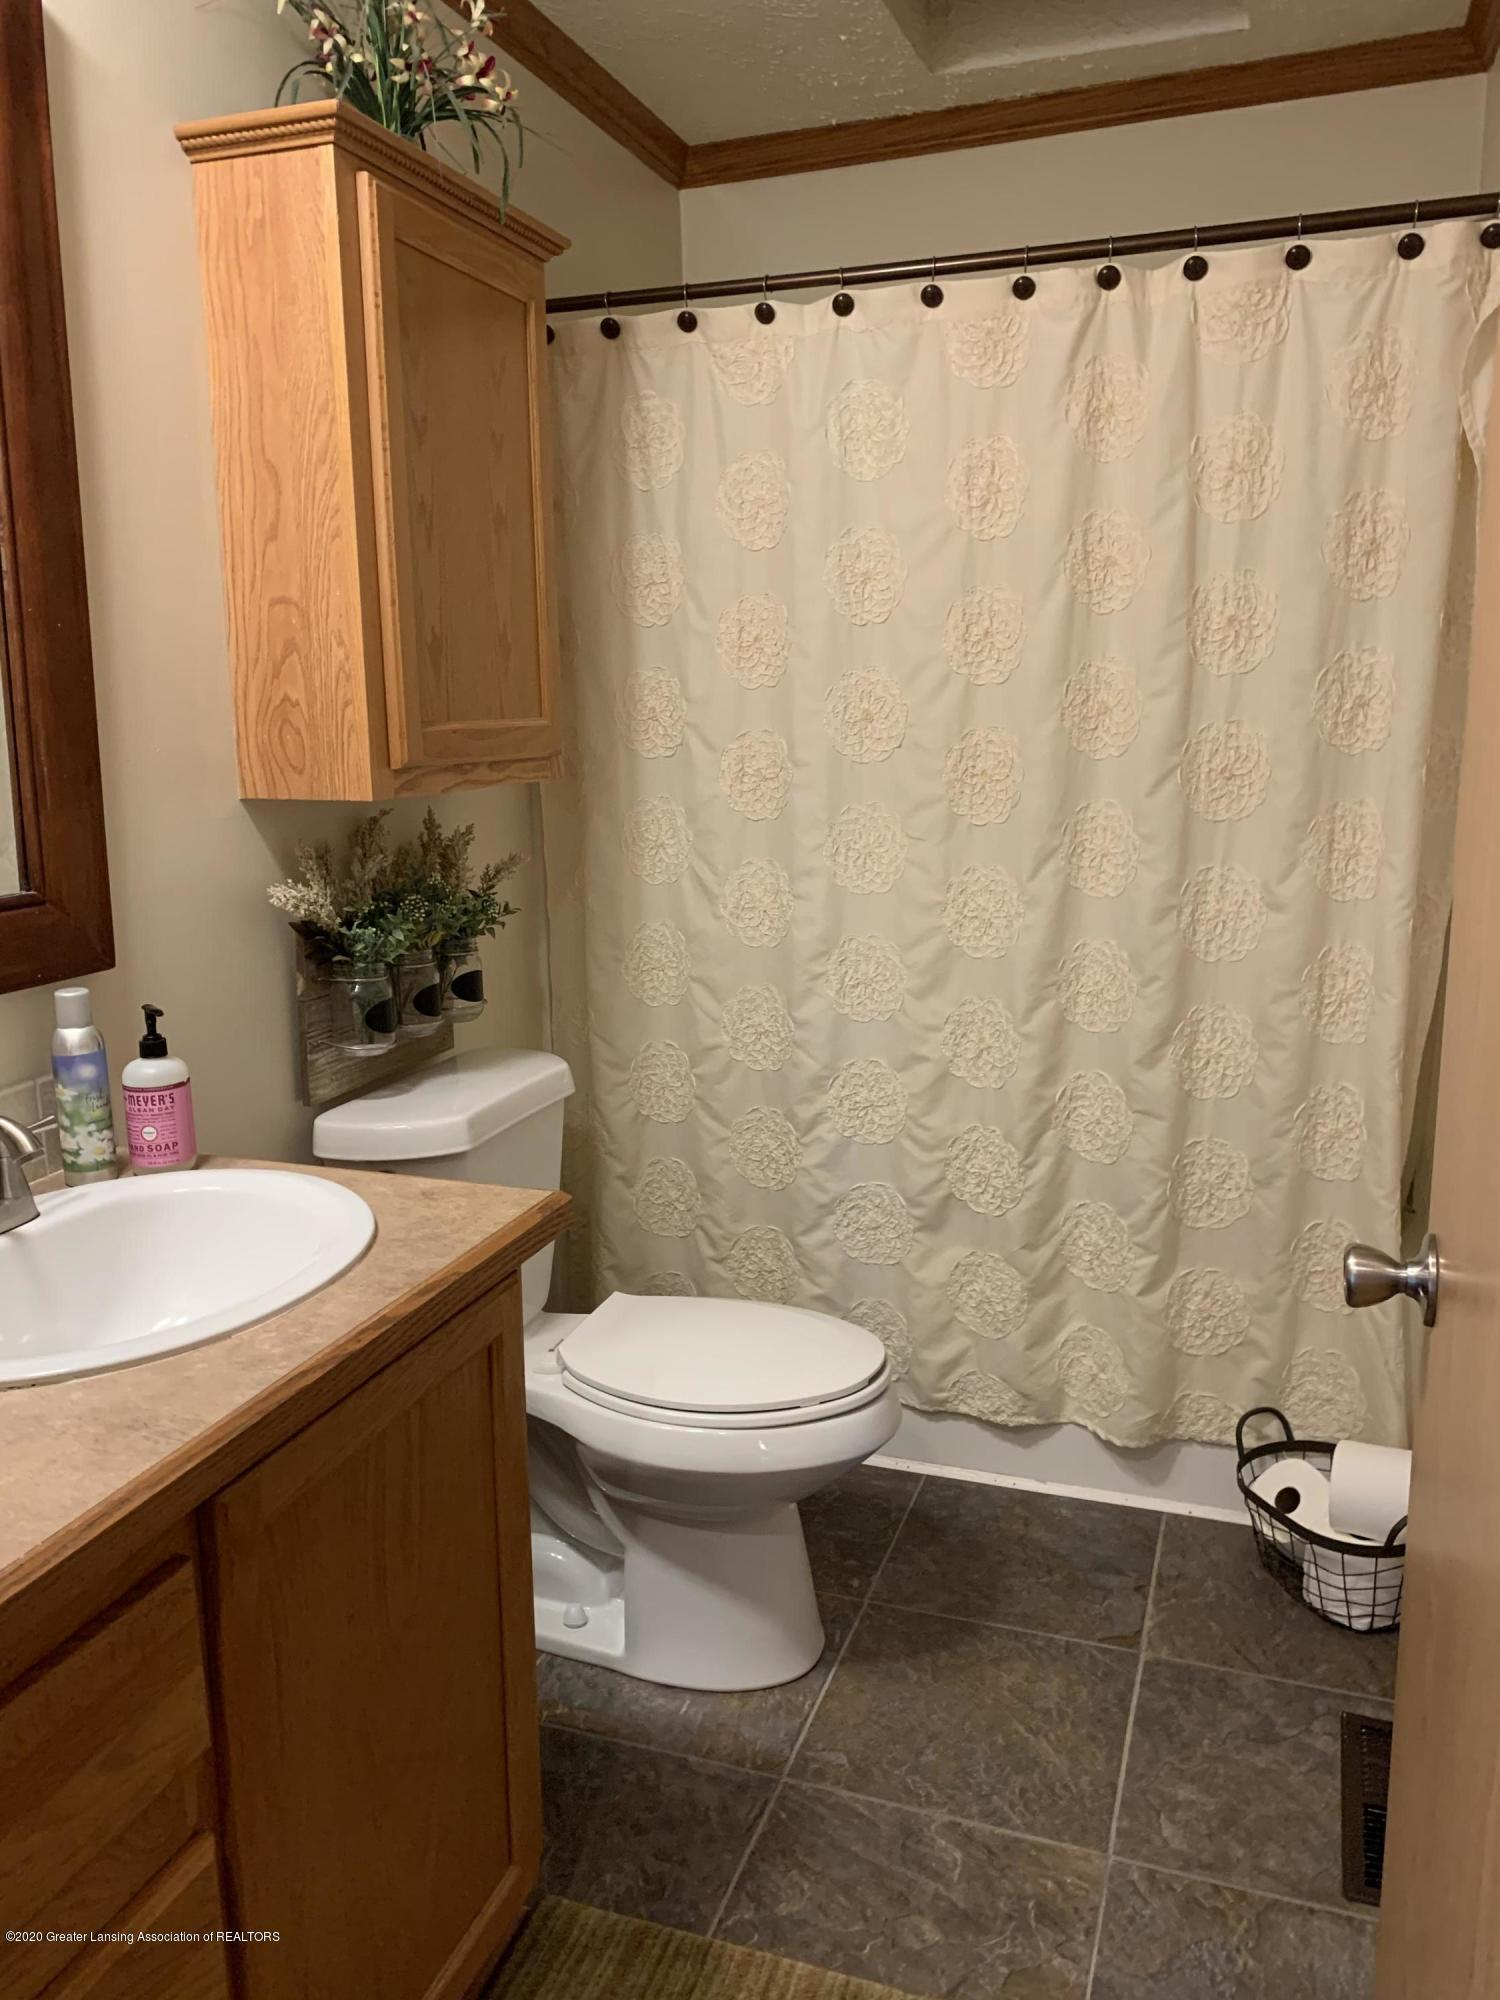 7582 S Gale Rd - Bathroom - 24